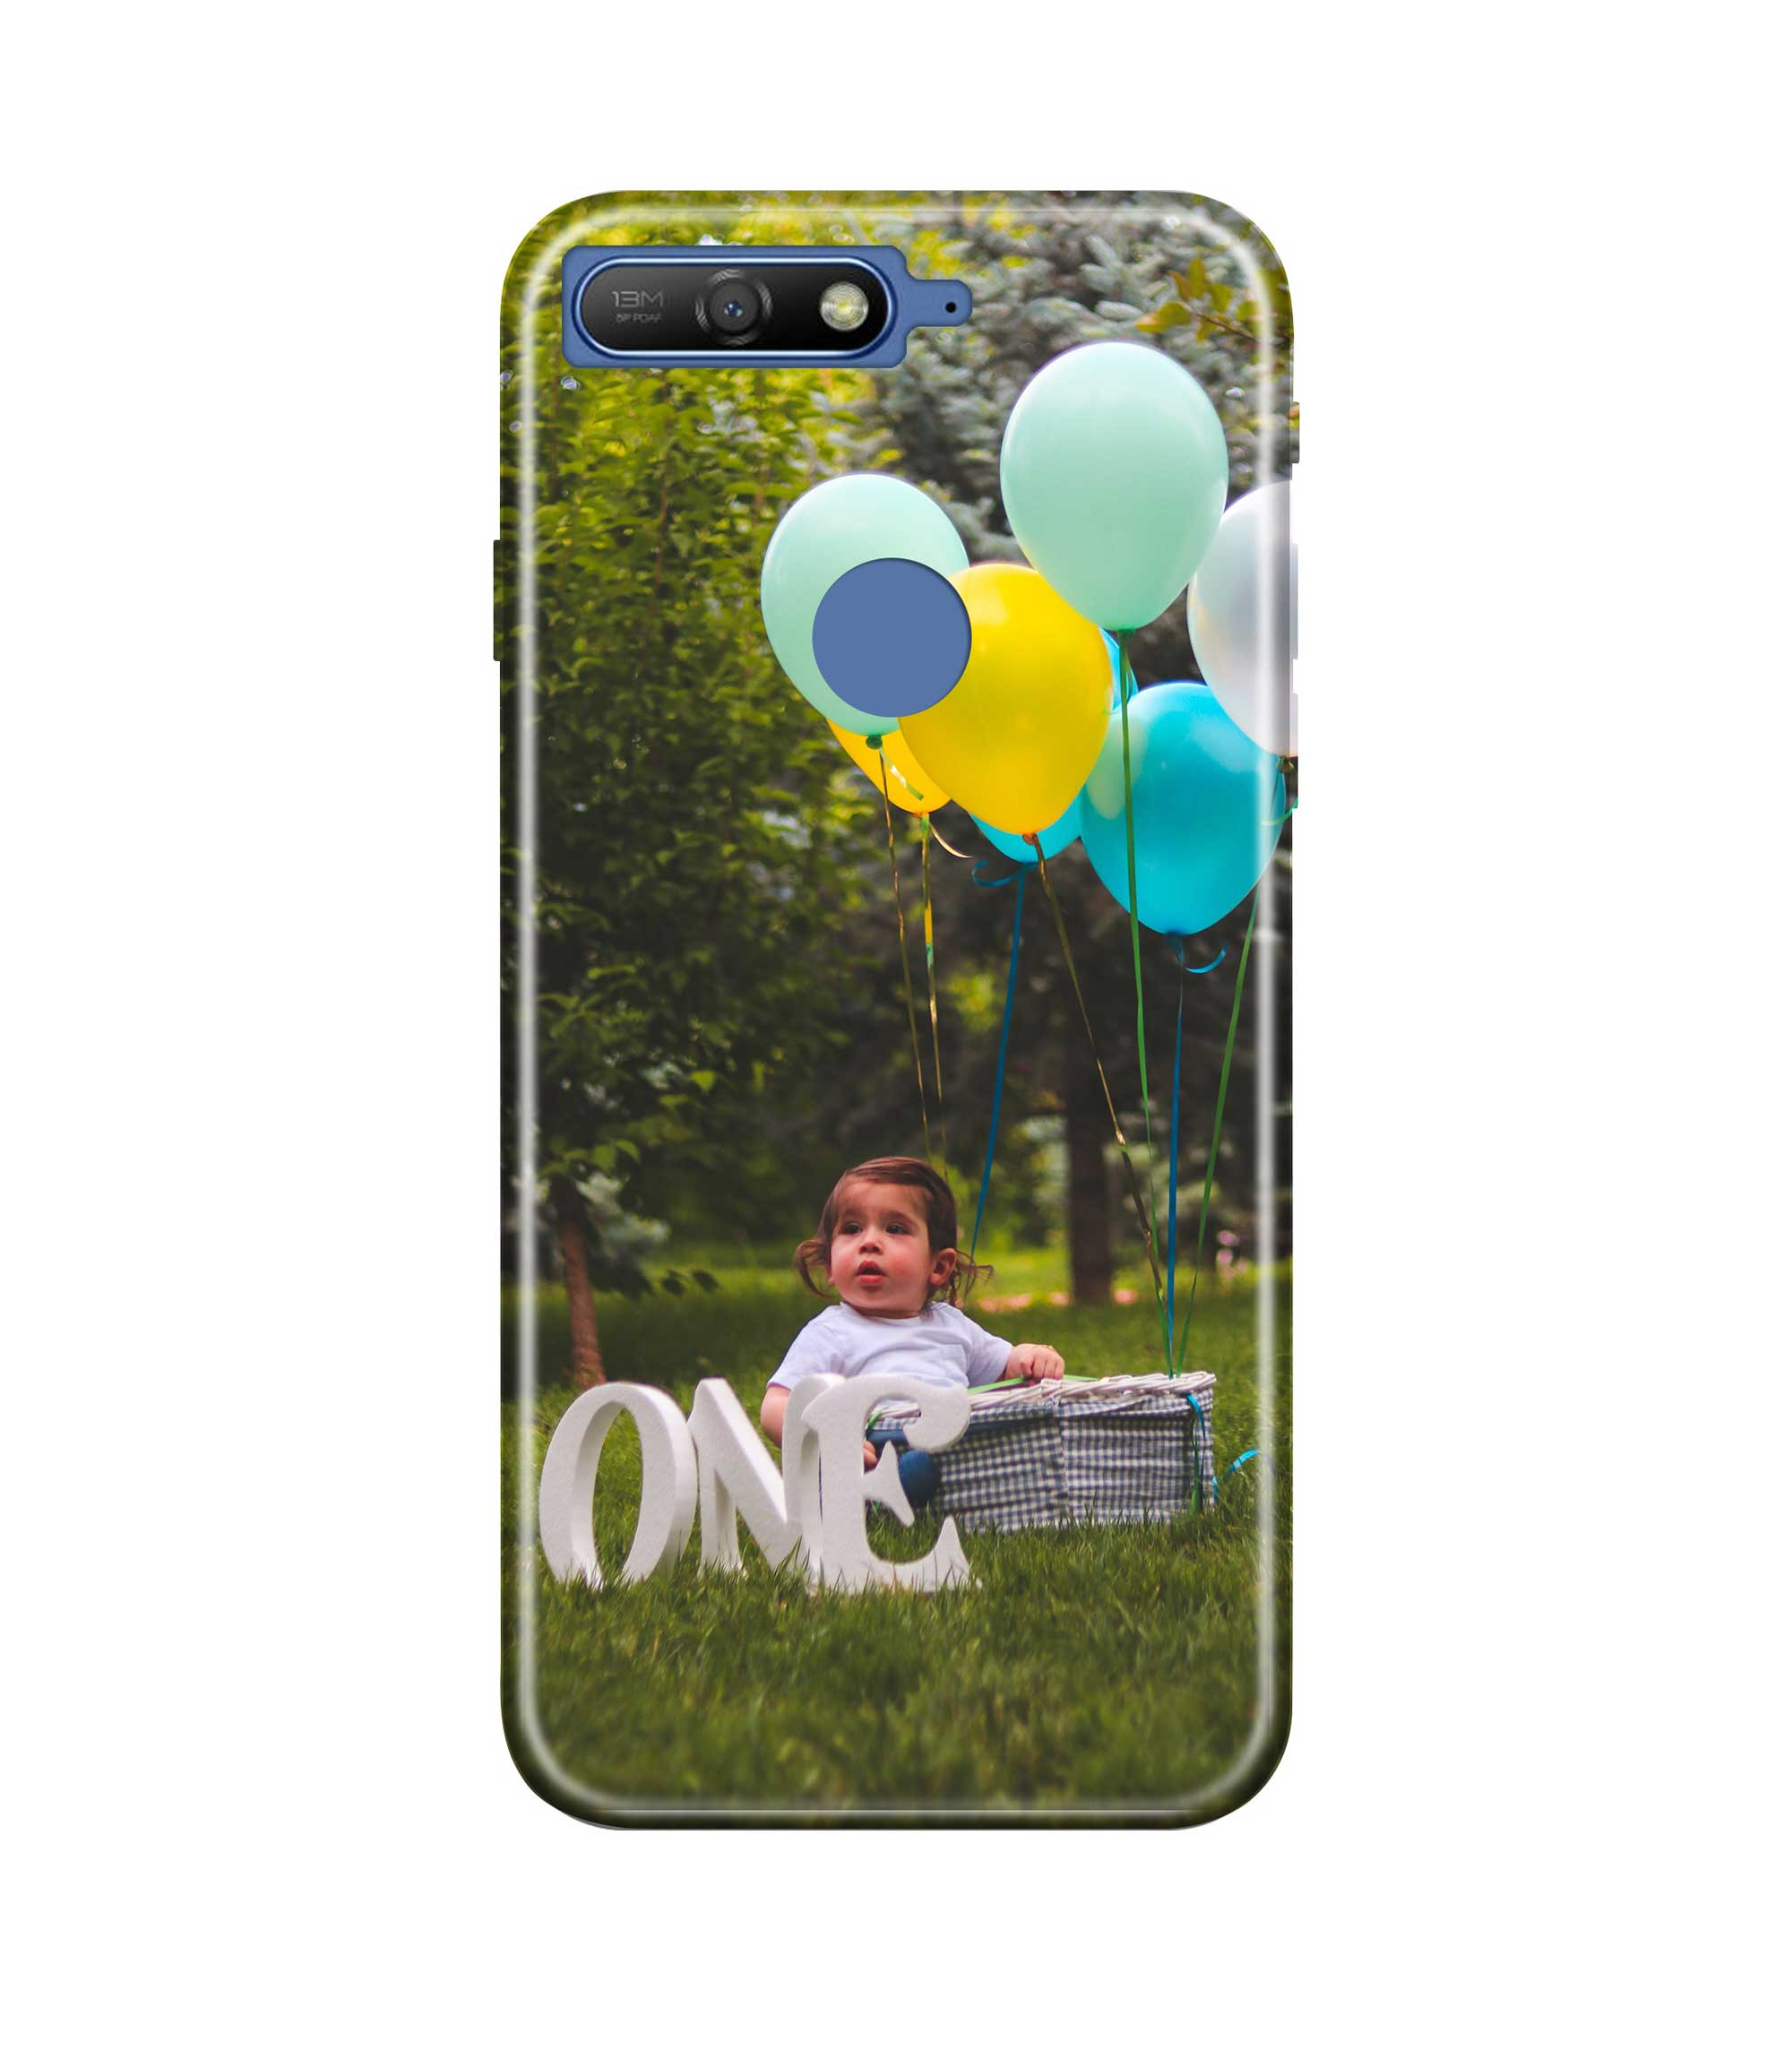 Personalised Case for Huawei Y9 2018